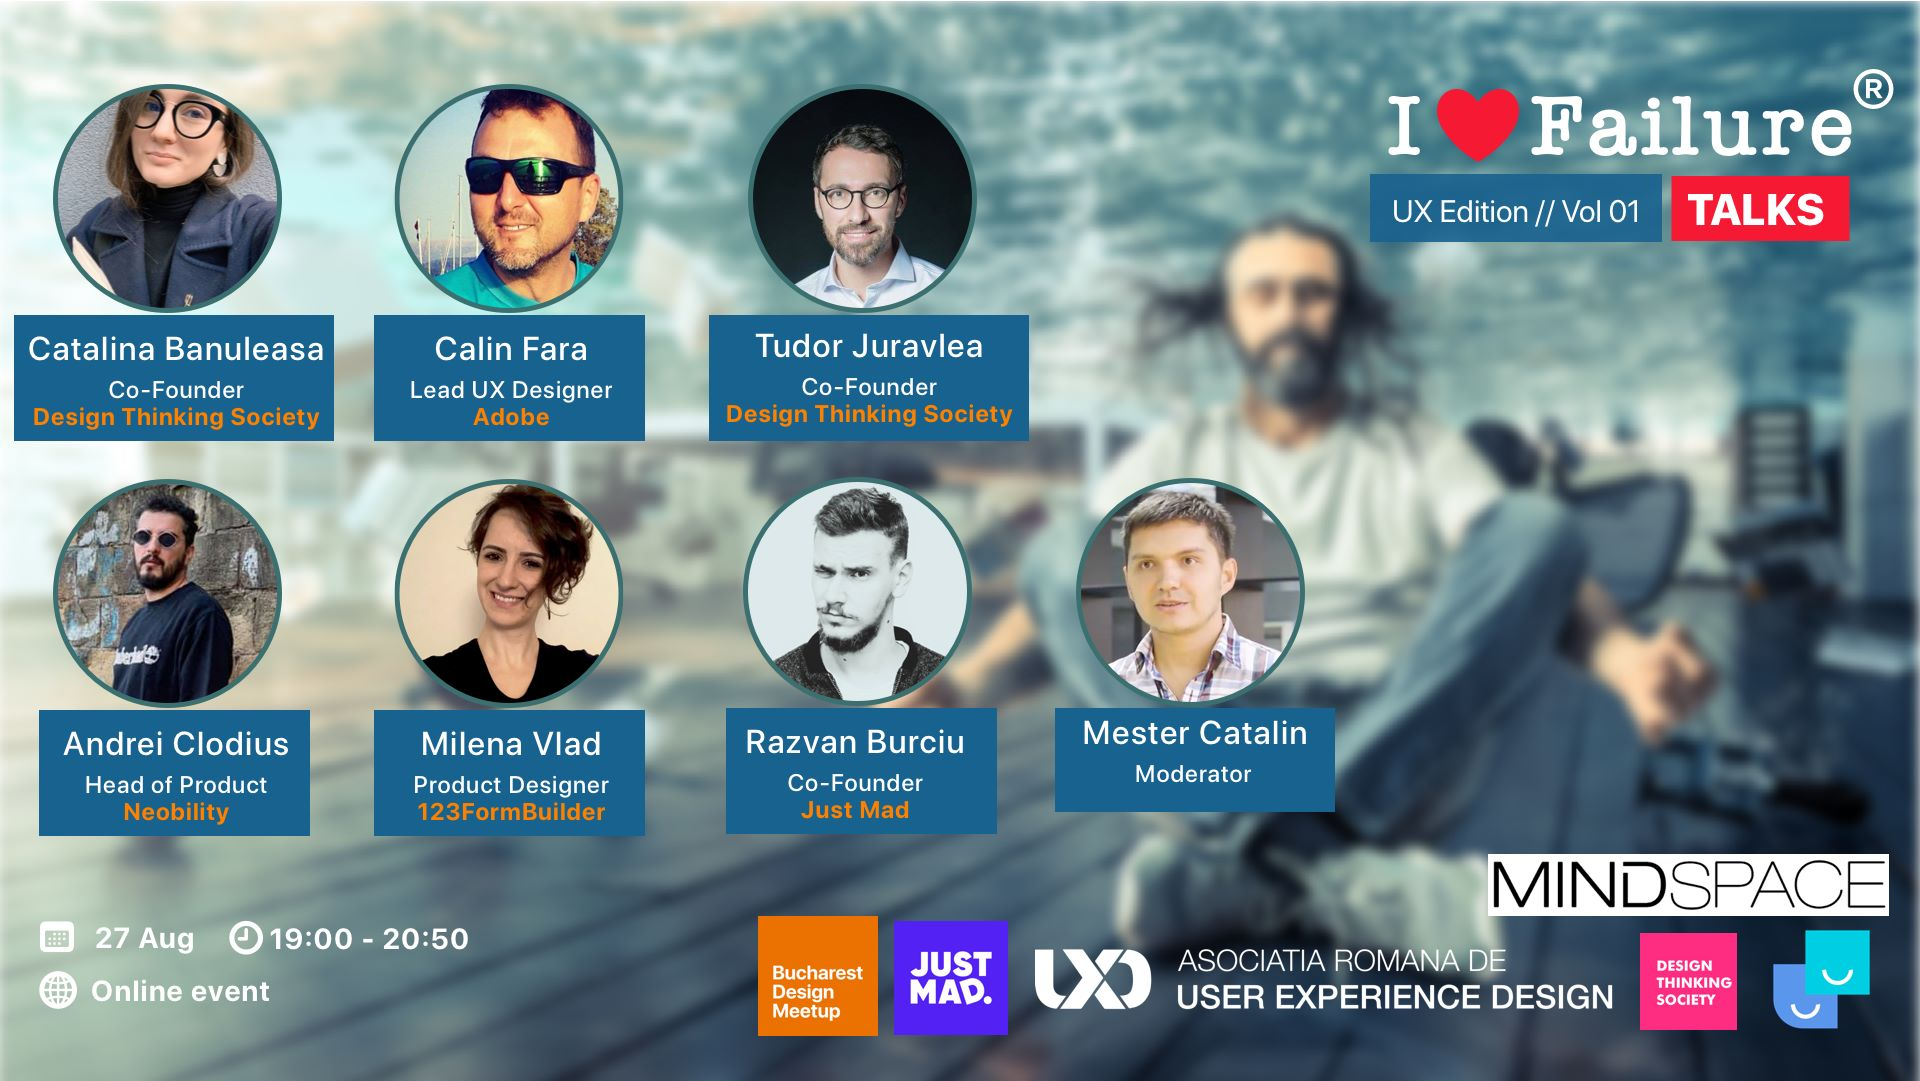 I Love Failure TALKS – UX edition // Vol 01